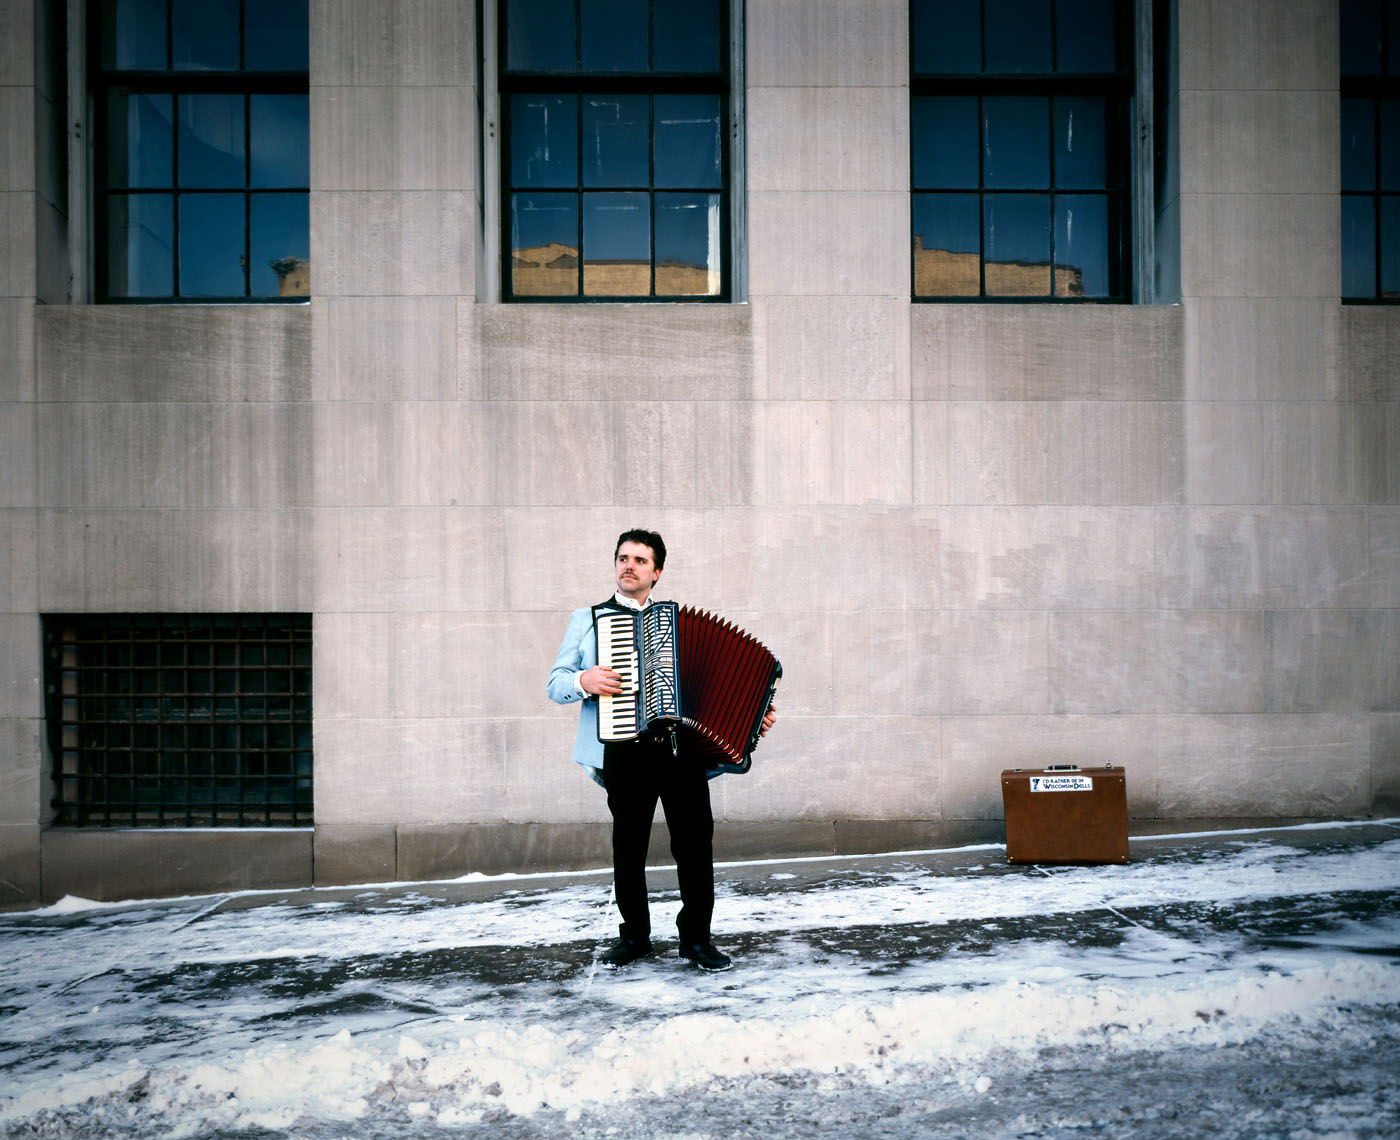 Busker playing accordion in snow portrait